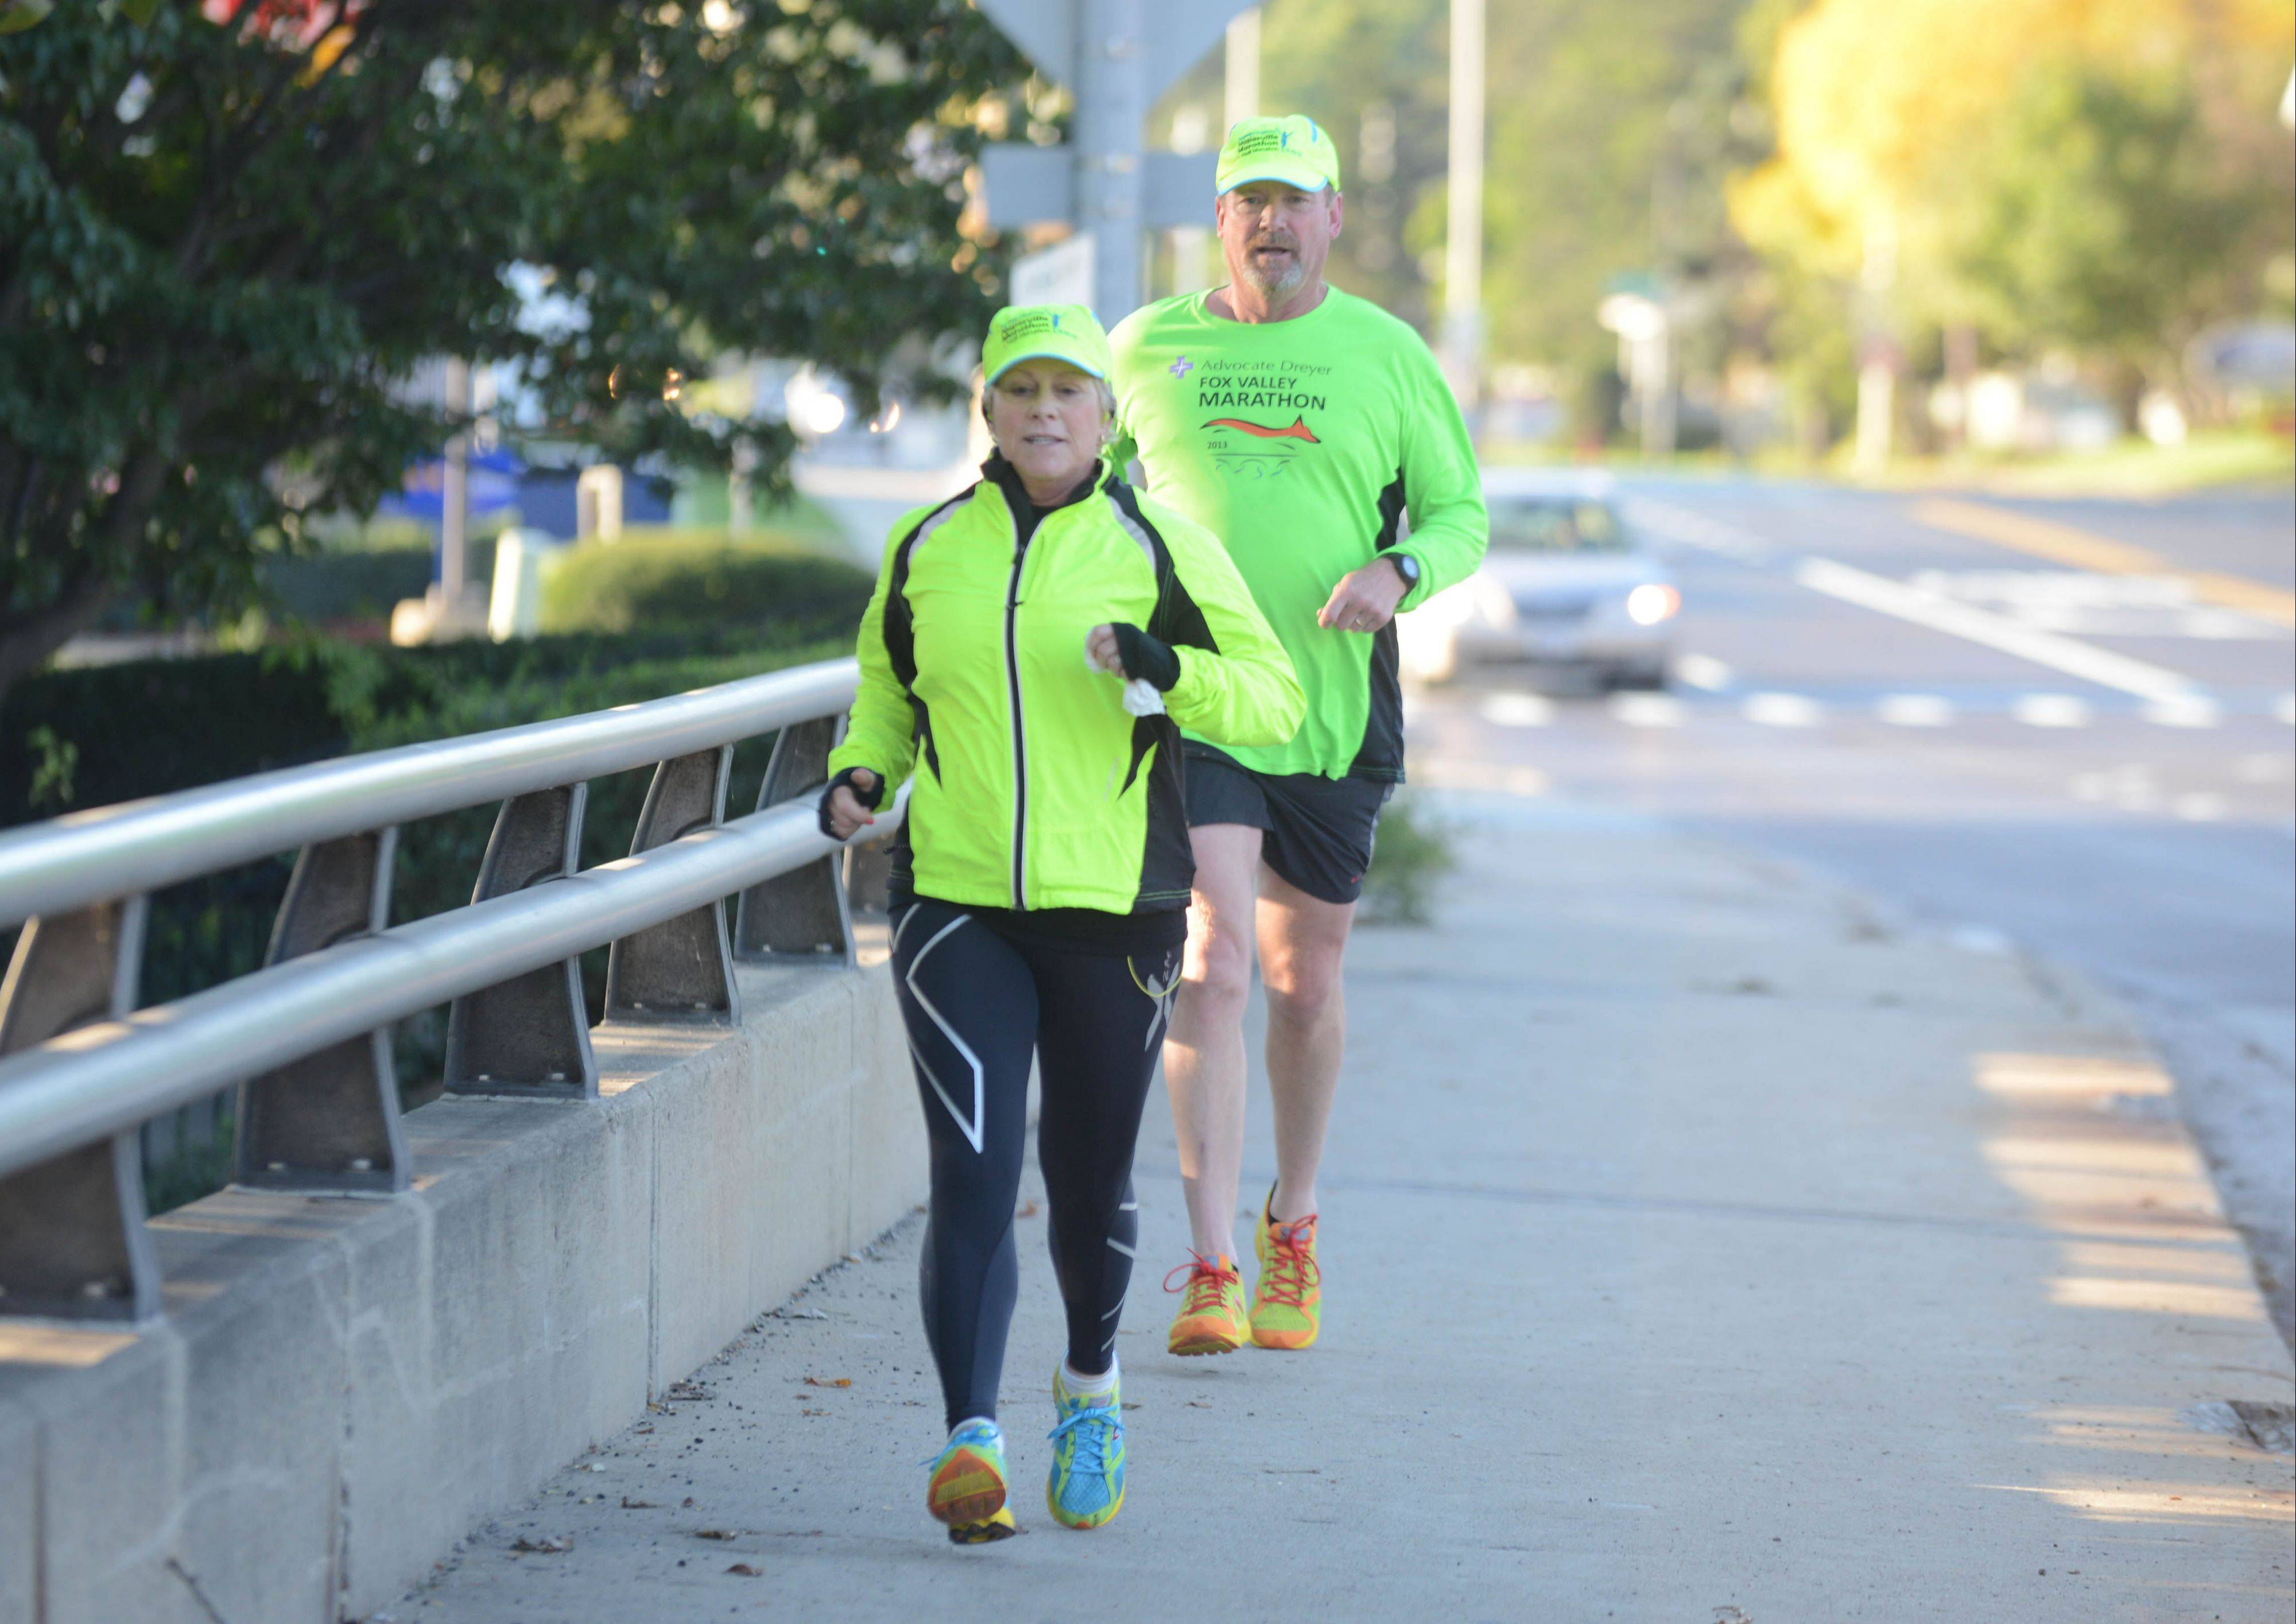 Polly and Bob Hackett of St. Charles complete a training run for the Naperville Marathon with Naperville Running Company. Bob Hackett is one of the directors of the race.